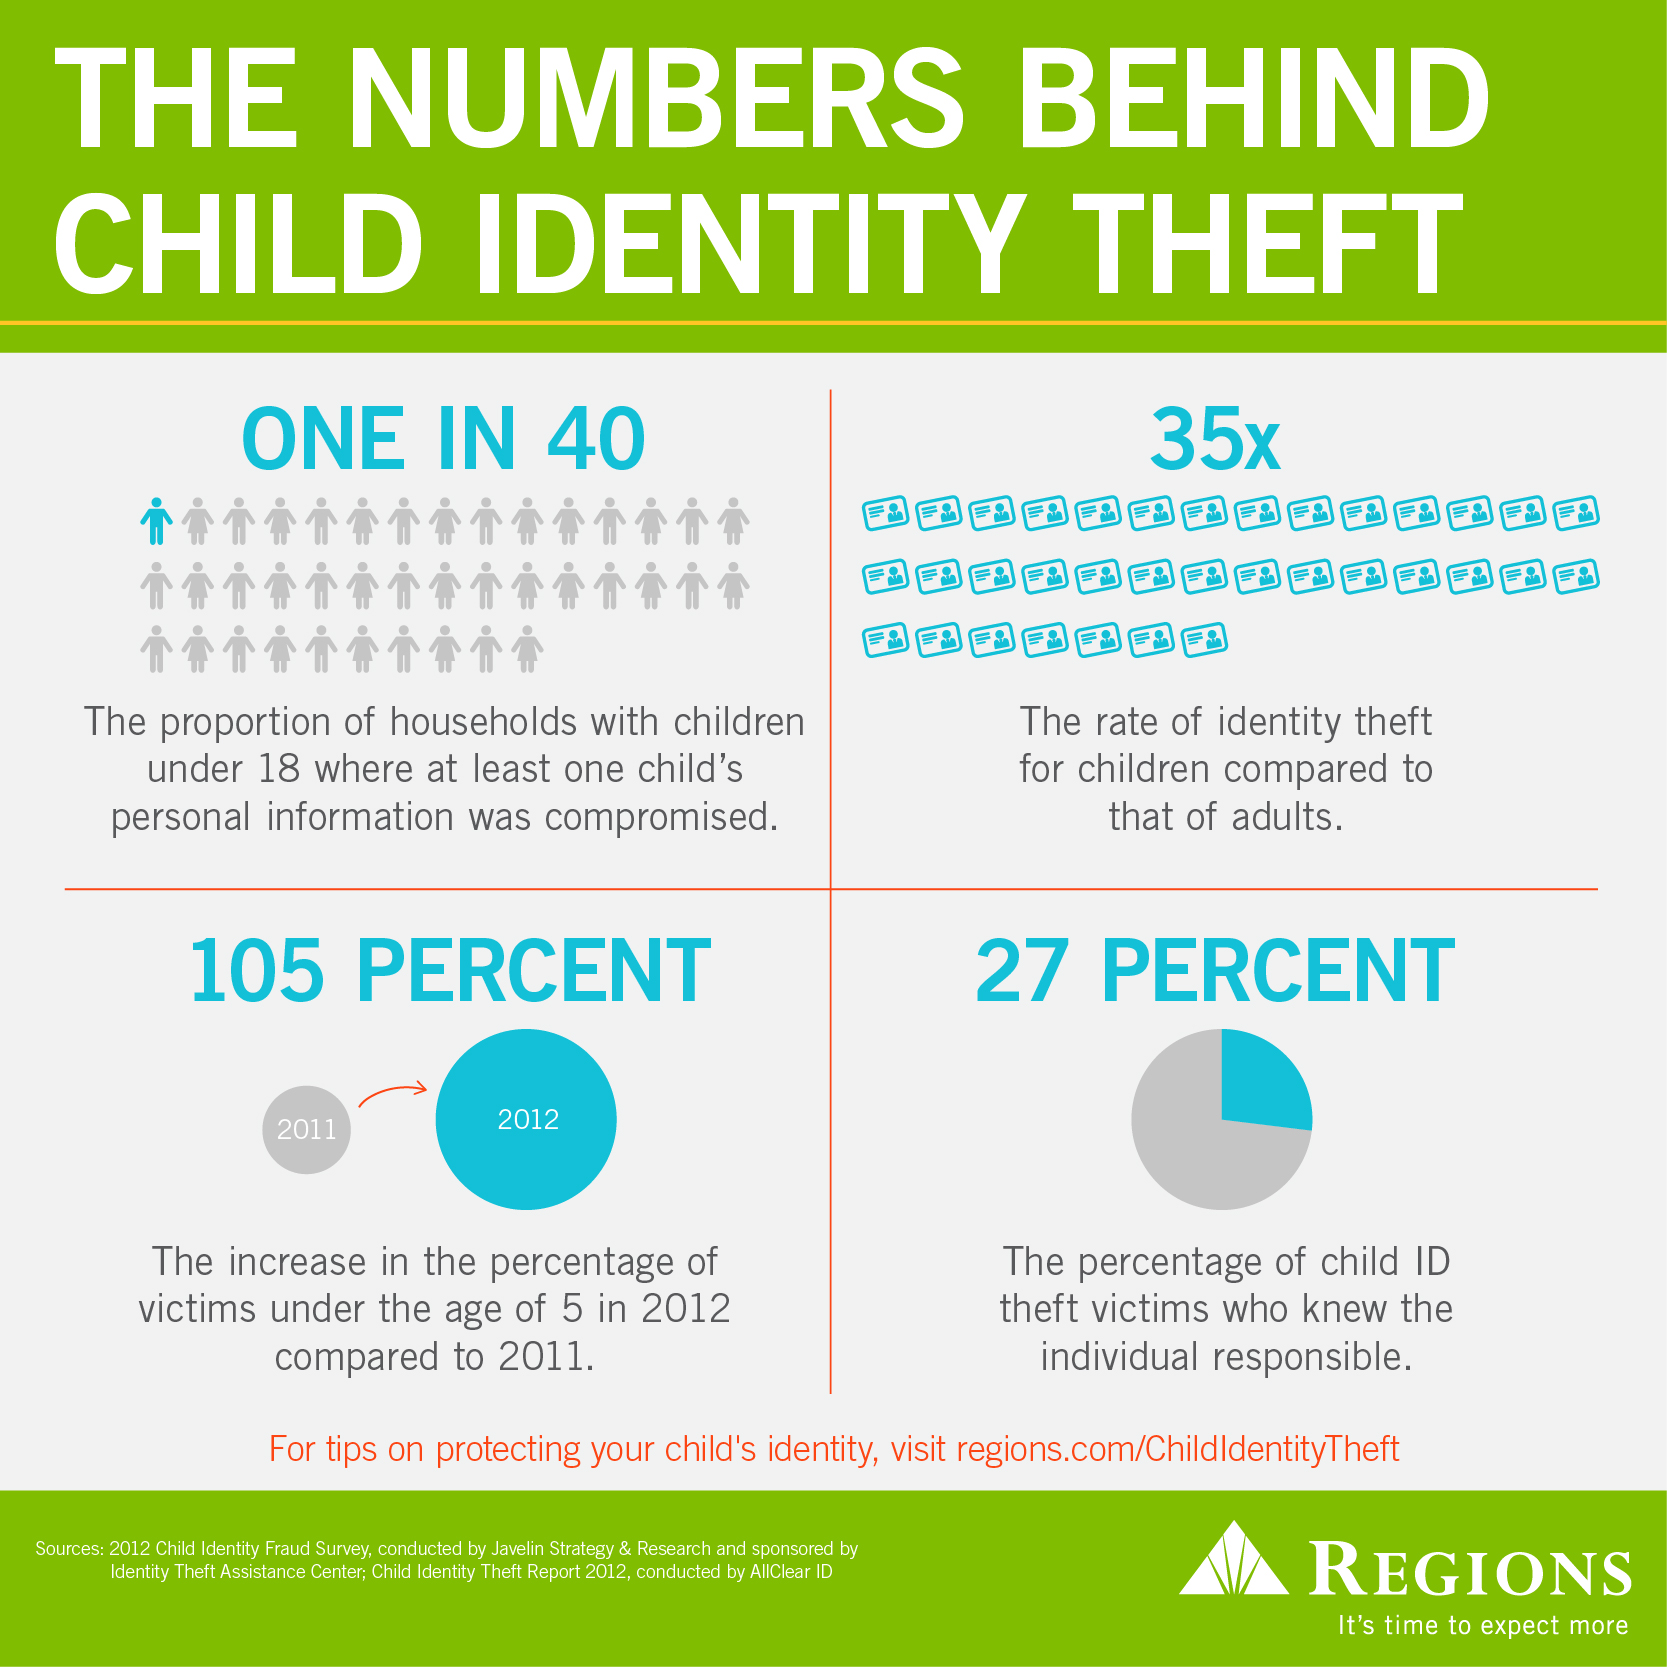 prevent child identify theft infographic